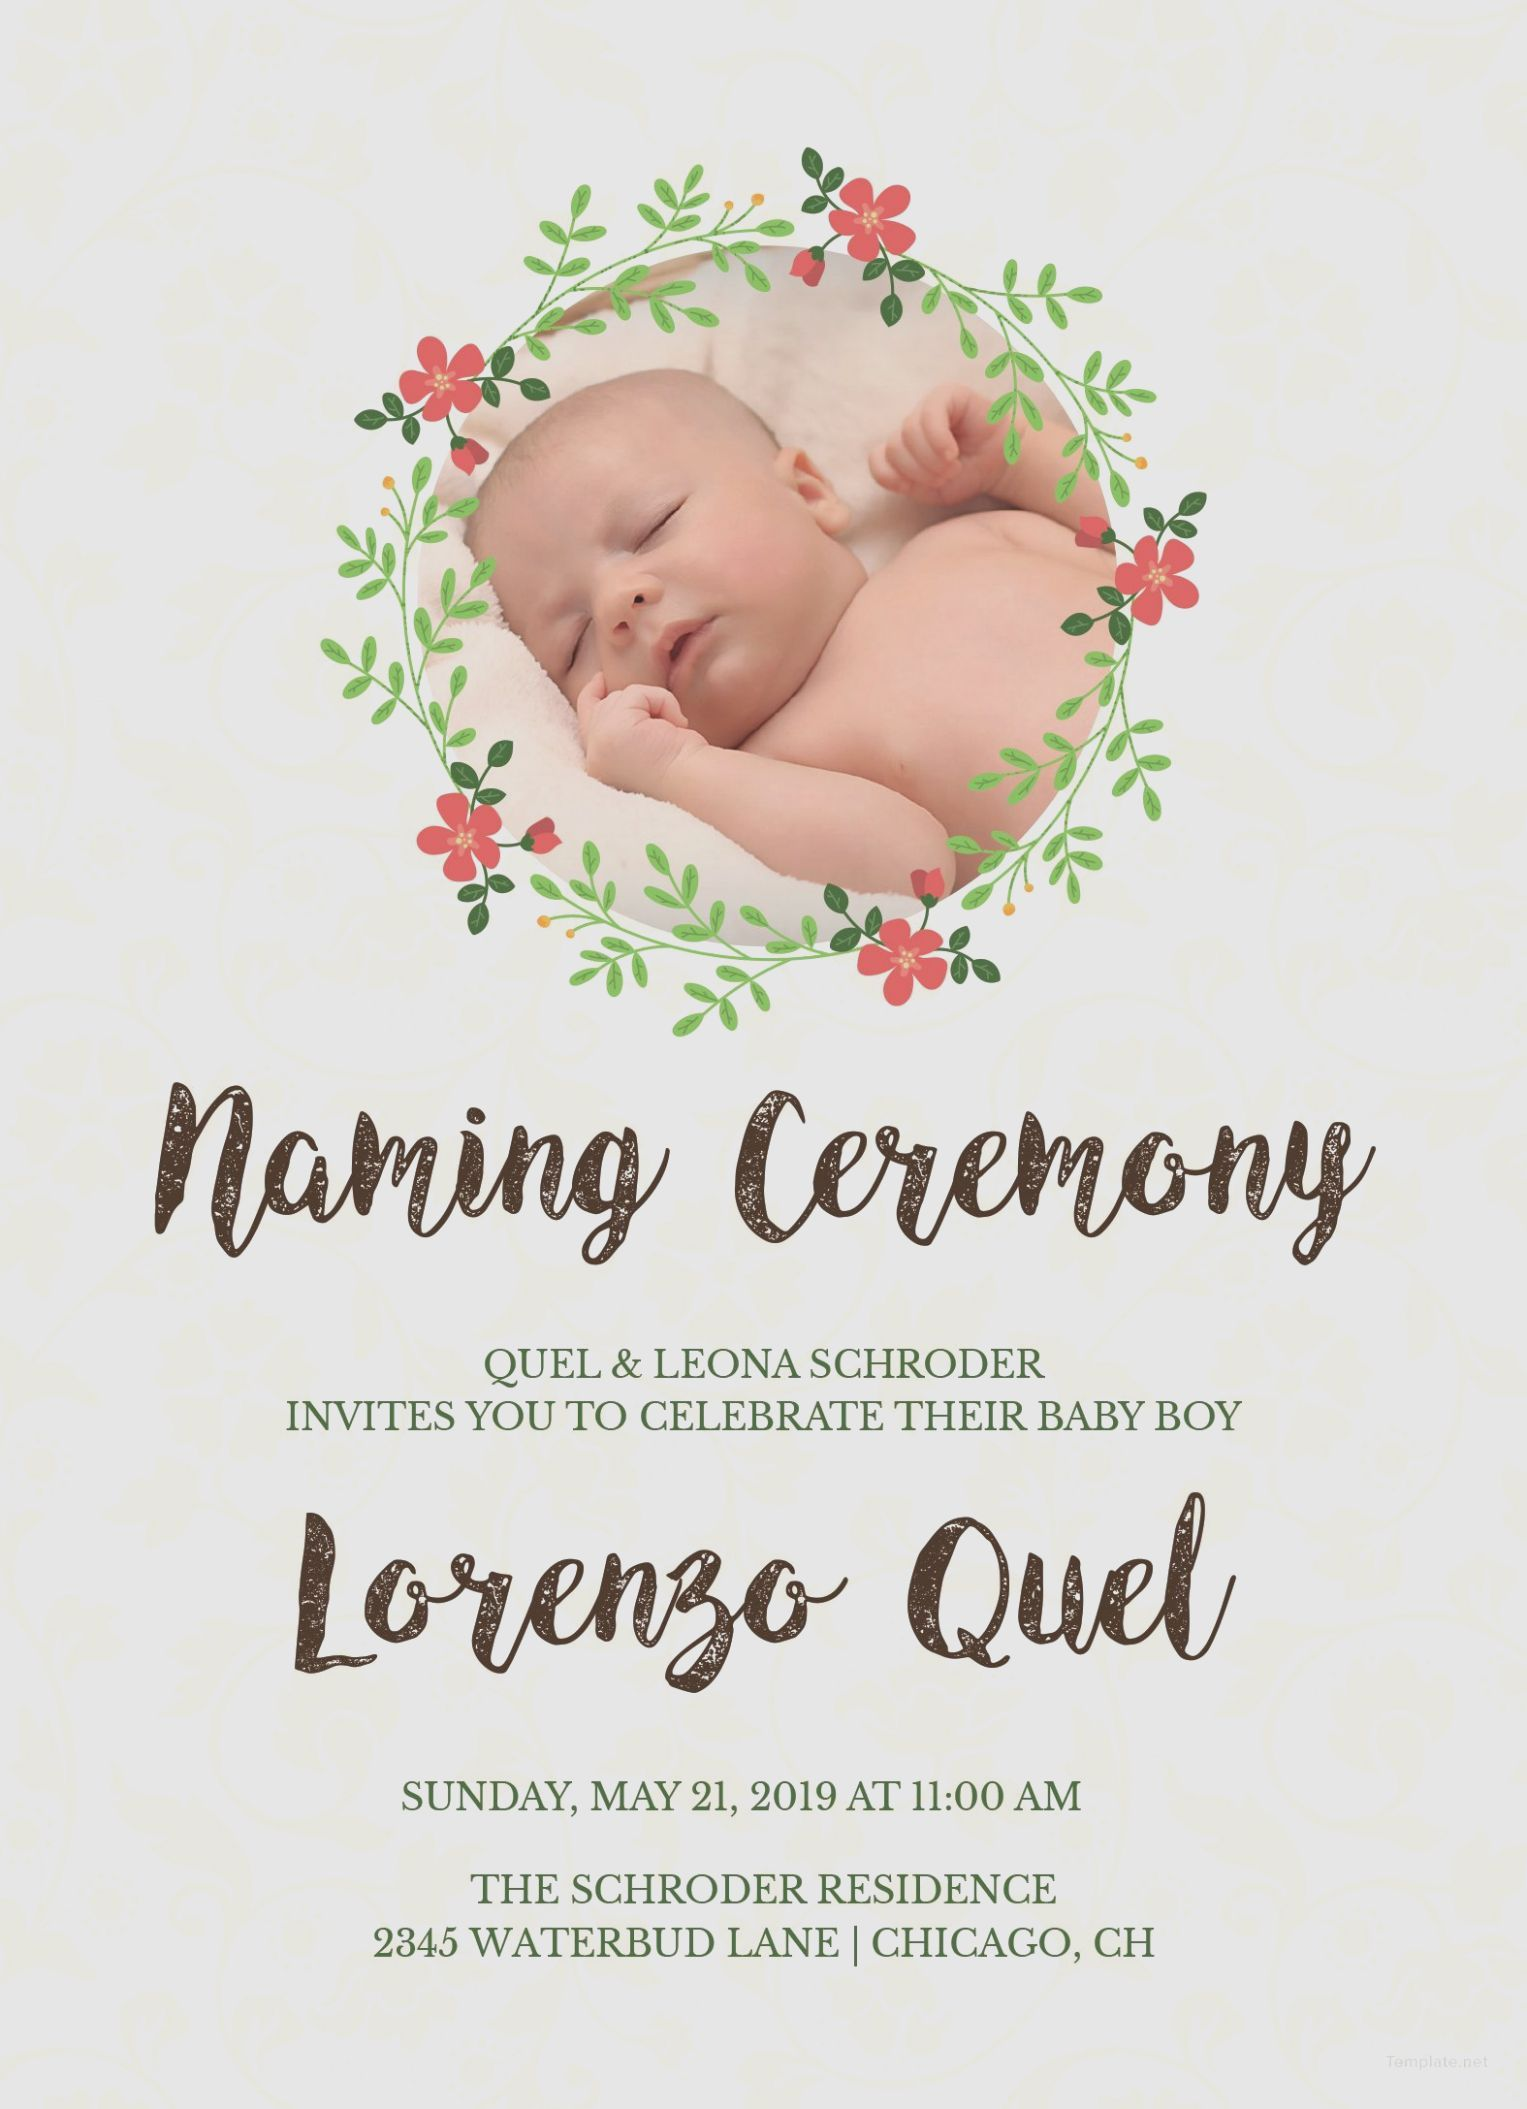 7 Naming Ceremony Invitation Card Template Free Download Naming Ceremony Invitation Dedication Invitations Naming Ceremony